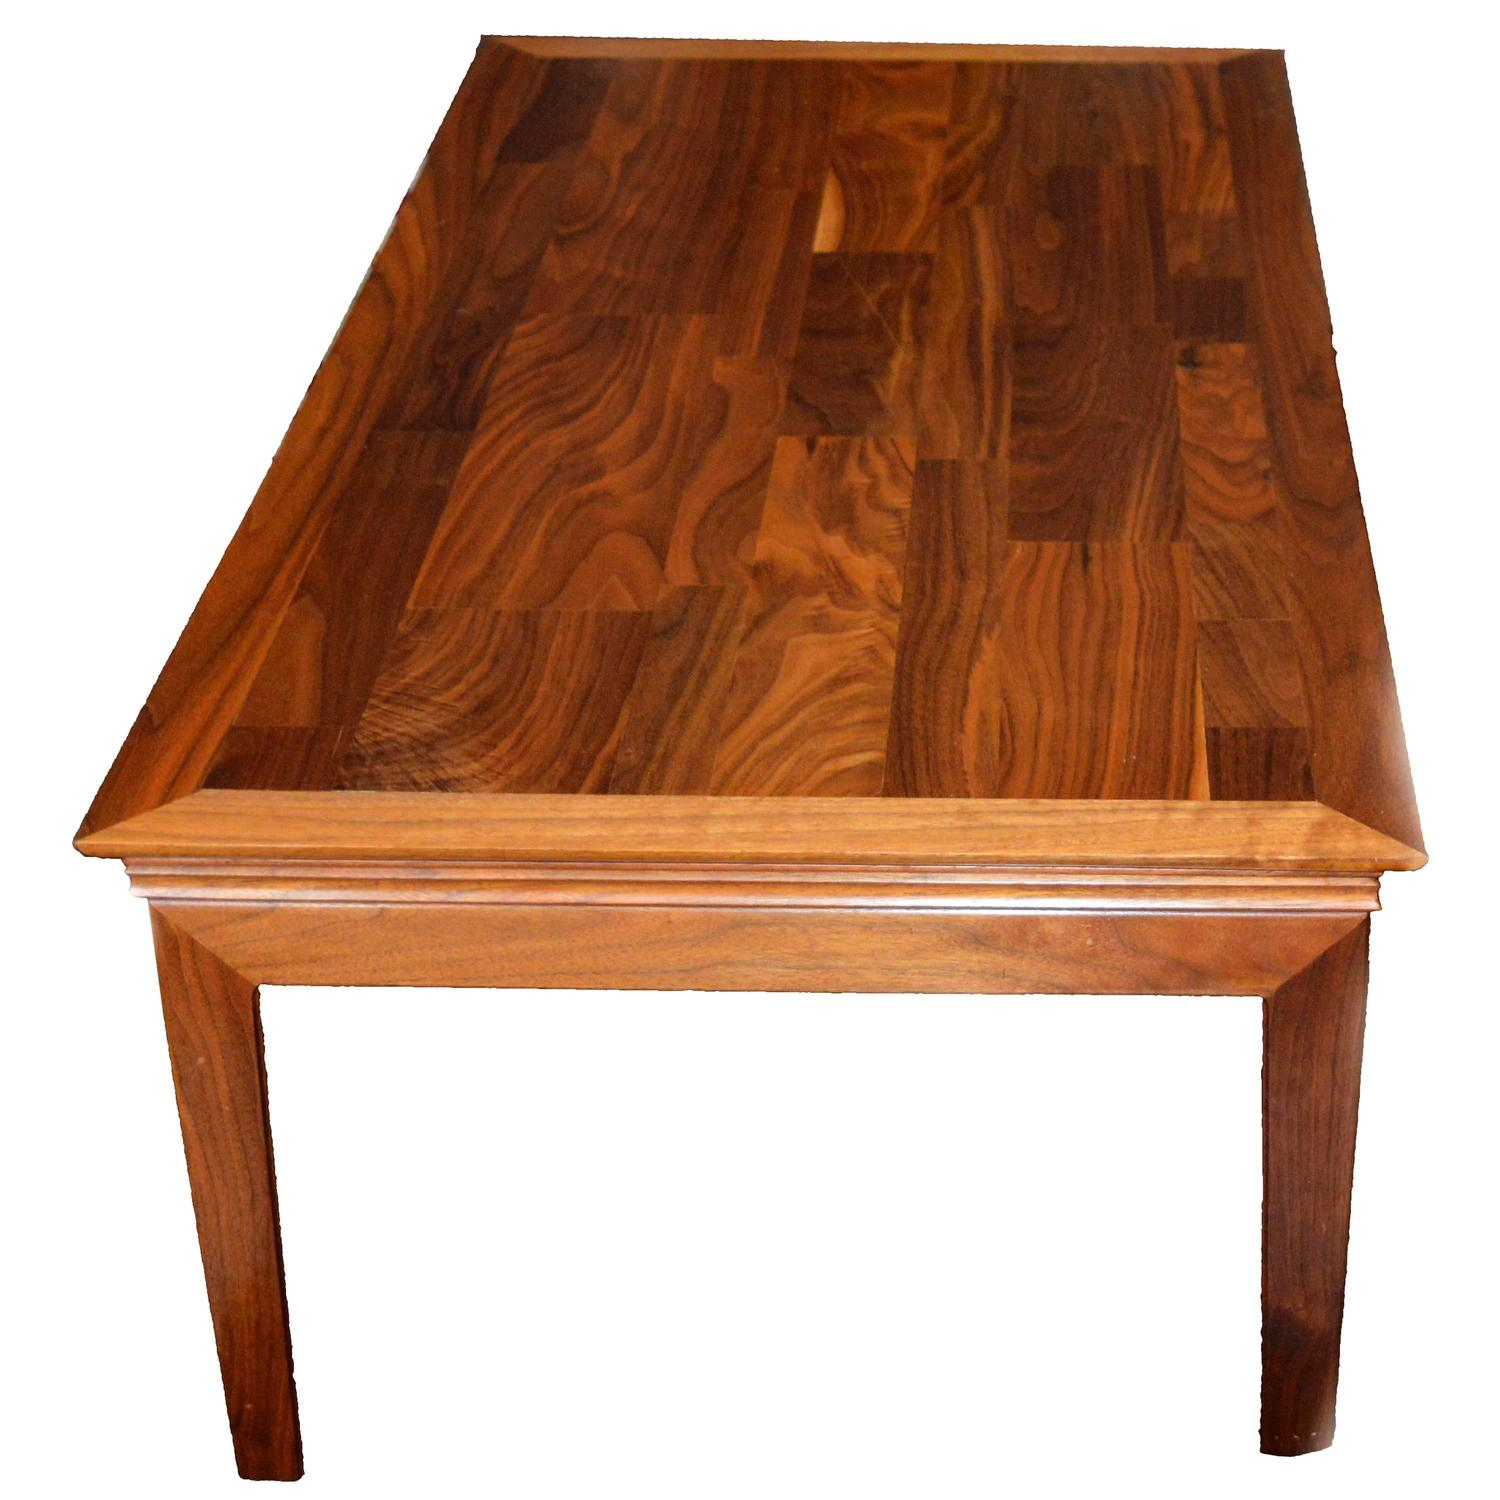 Koa Wood Kitchen Cabinets: Koa Wood Coffee Table By Paul Ayoob For Sale At 1stdibs